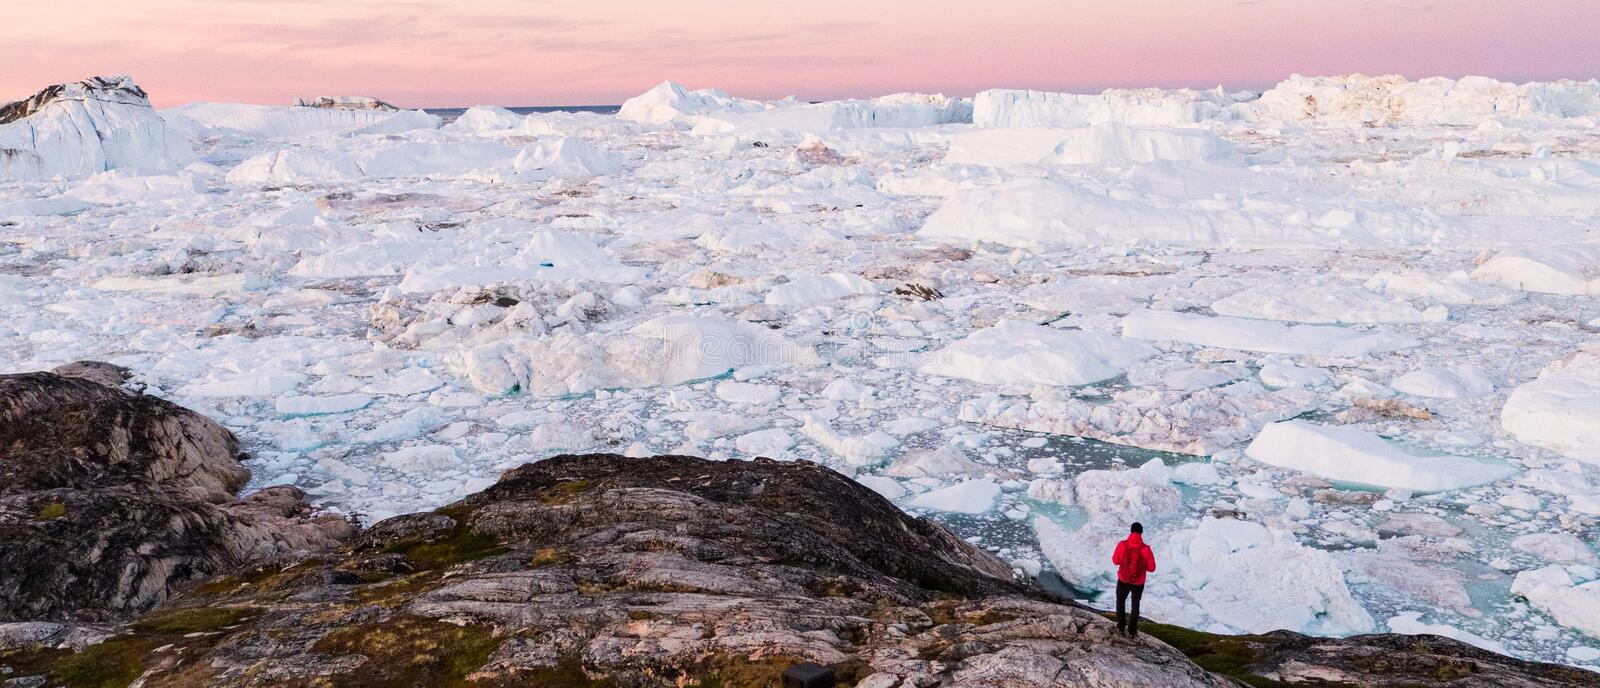 Global warming - Greenland Iceberg landscape of Ilulissat icefjord with icebergs royalty free stock photography